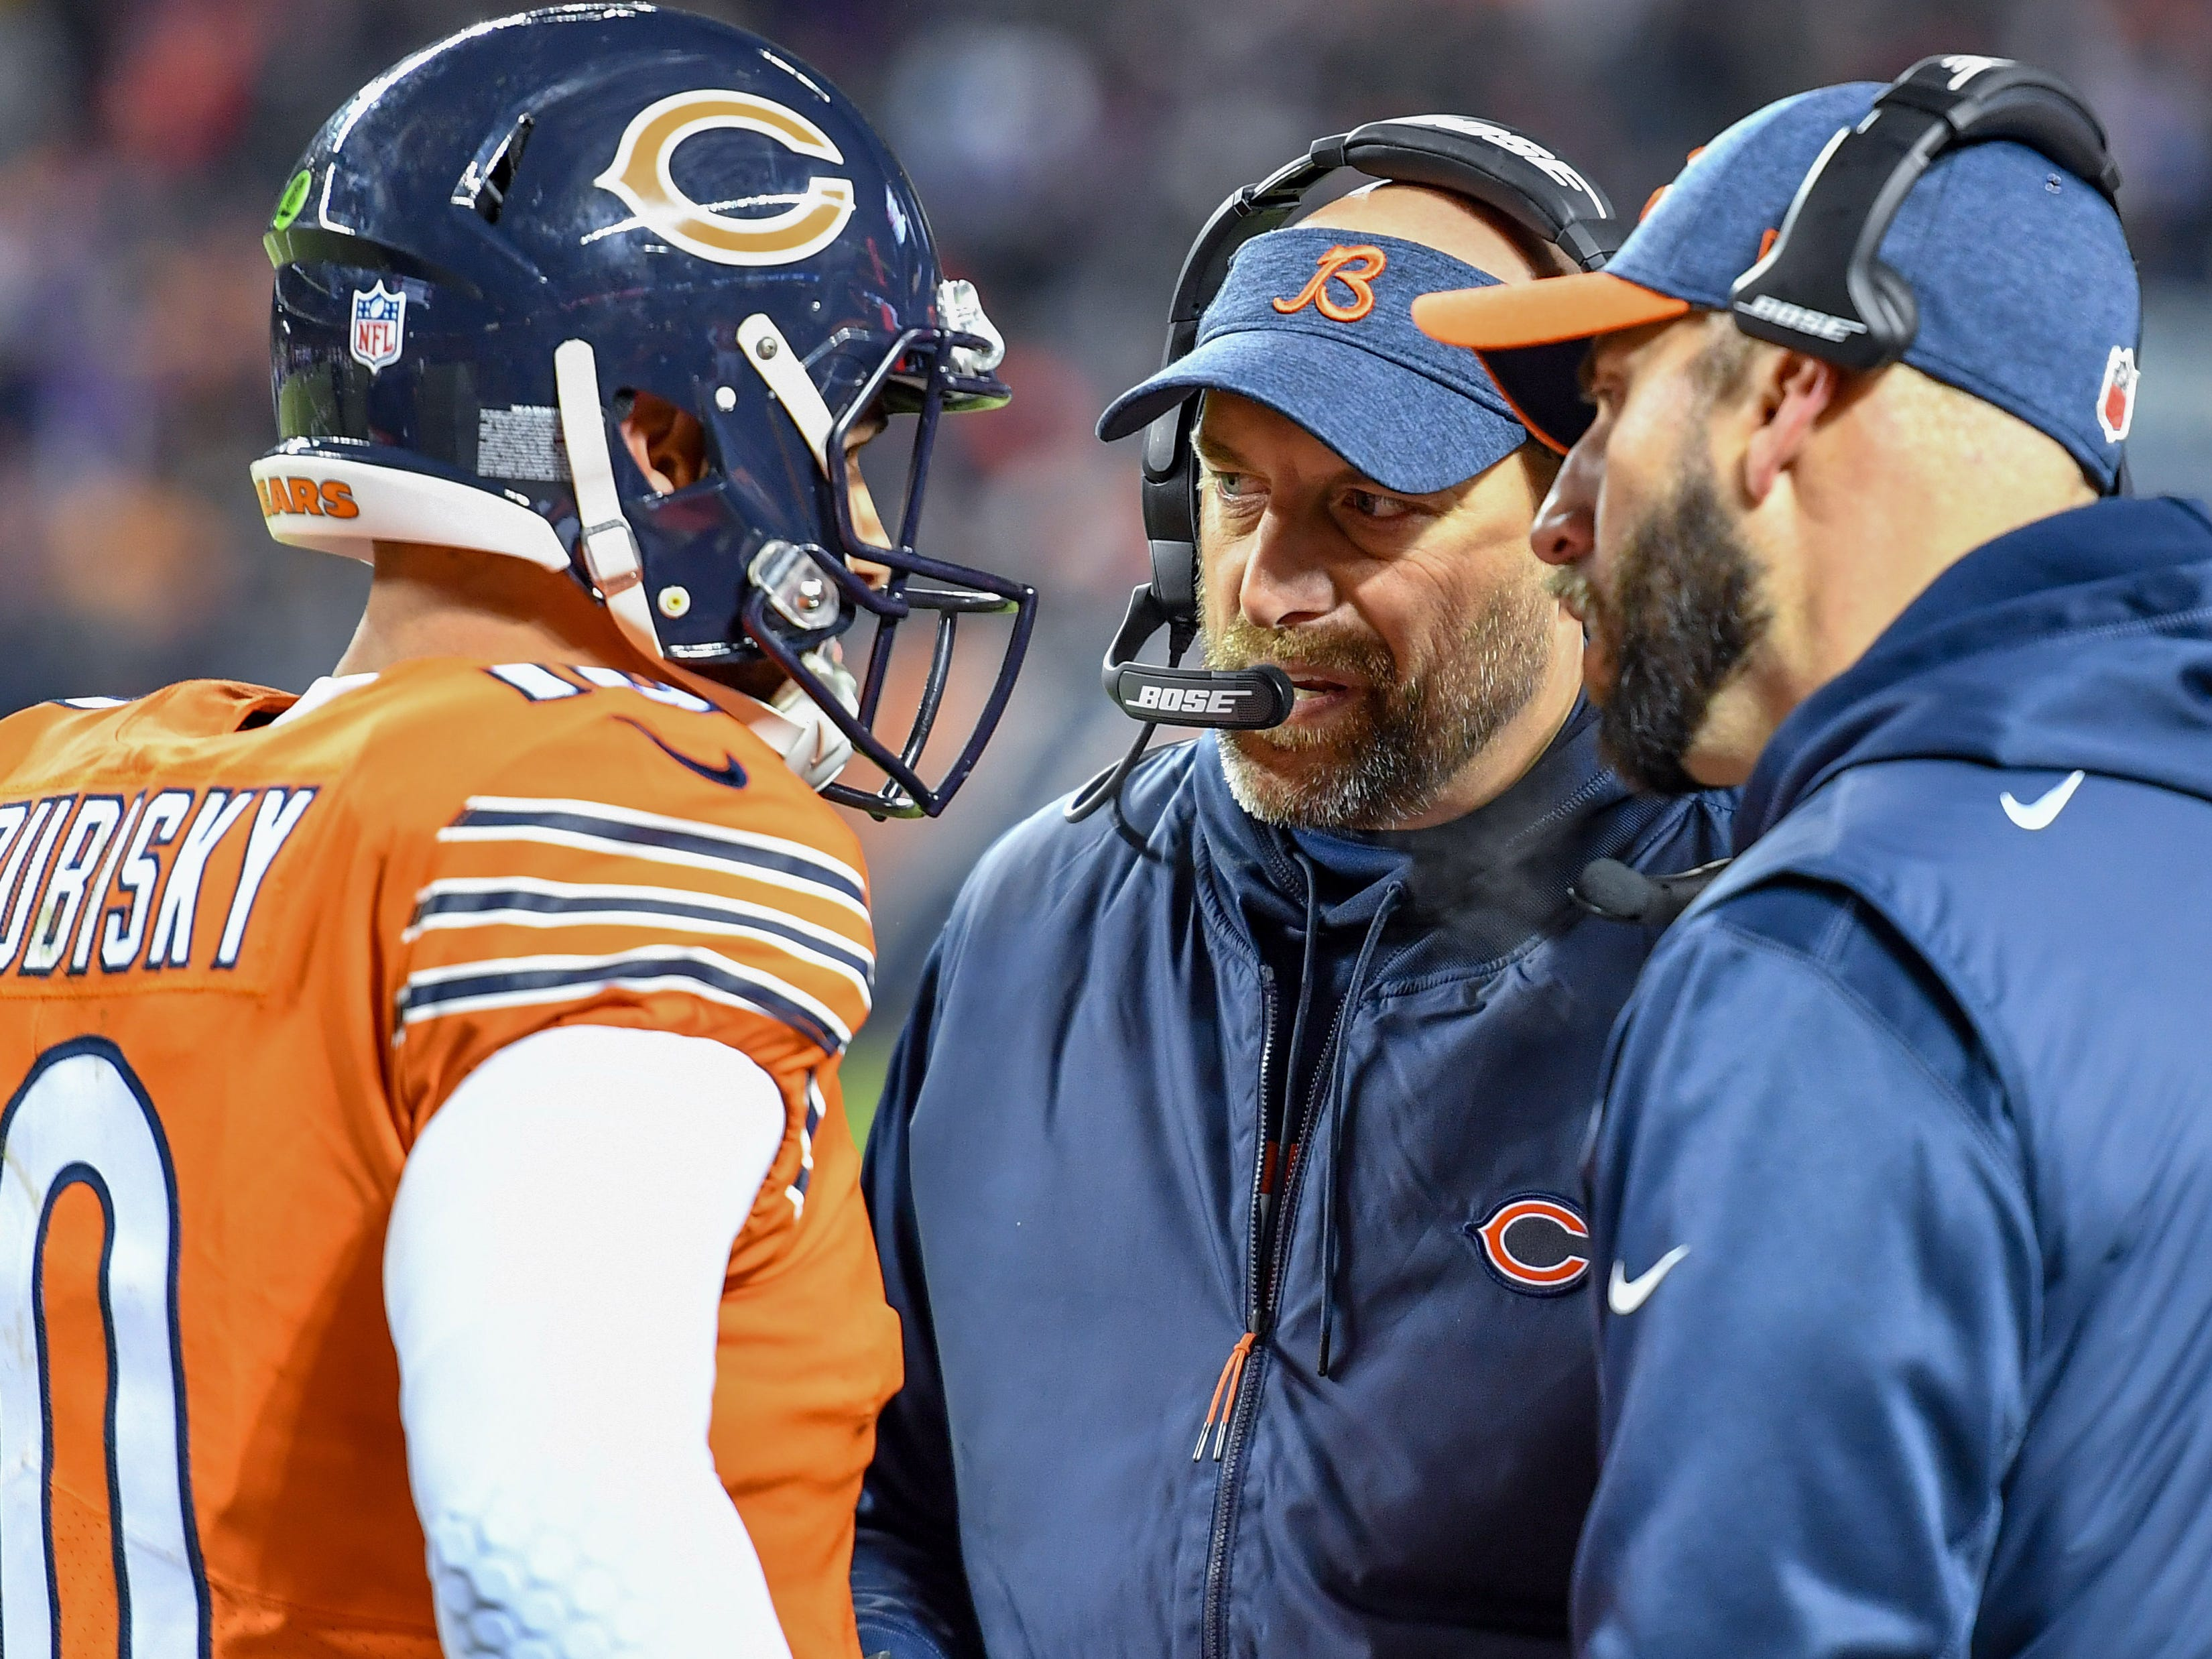 7. Bears (8): Only George Halas himself had better 10-game start on Chicago's sideline than Matt Nagy's 7-3 mark. Probably safe to open a steakhouse, dude.